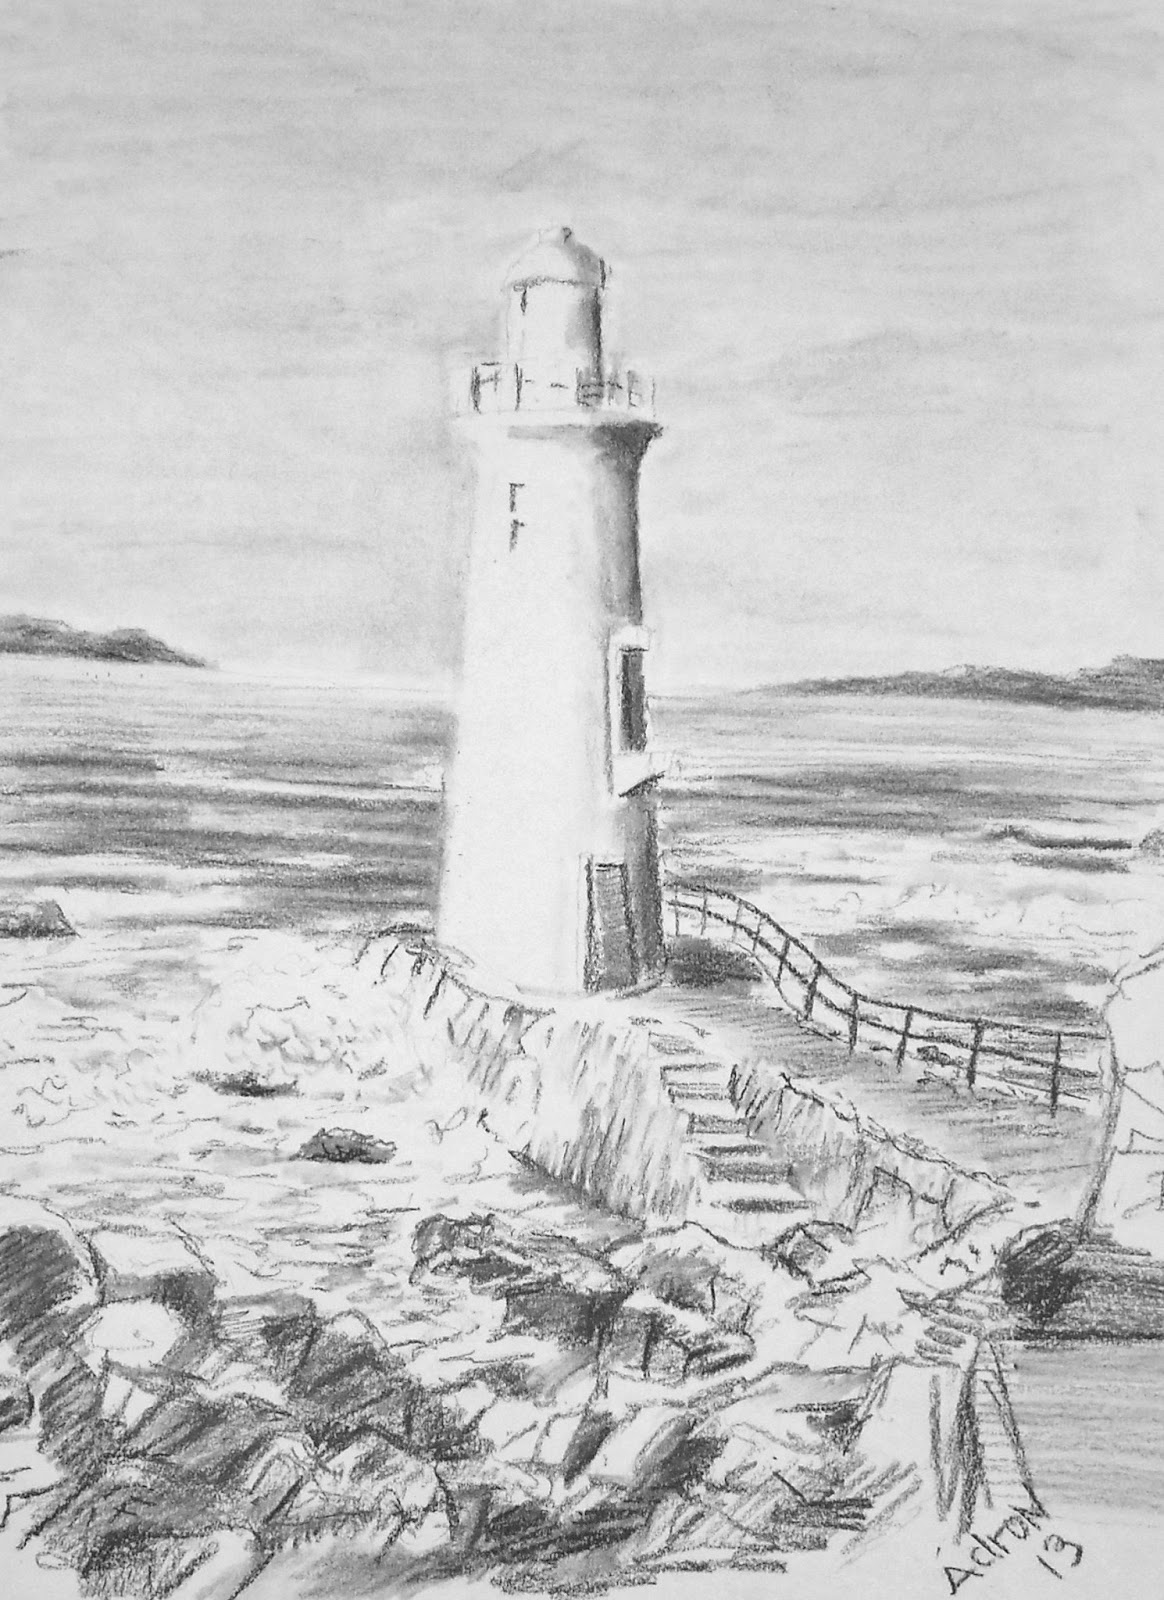 Drawn lighhouse charcoal drawing Light Art of Plans: Charcoal